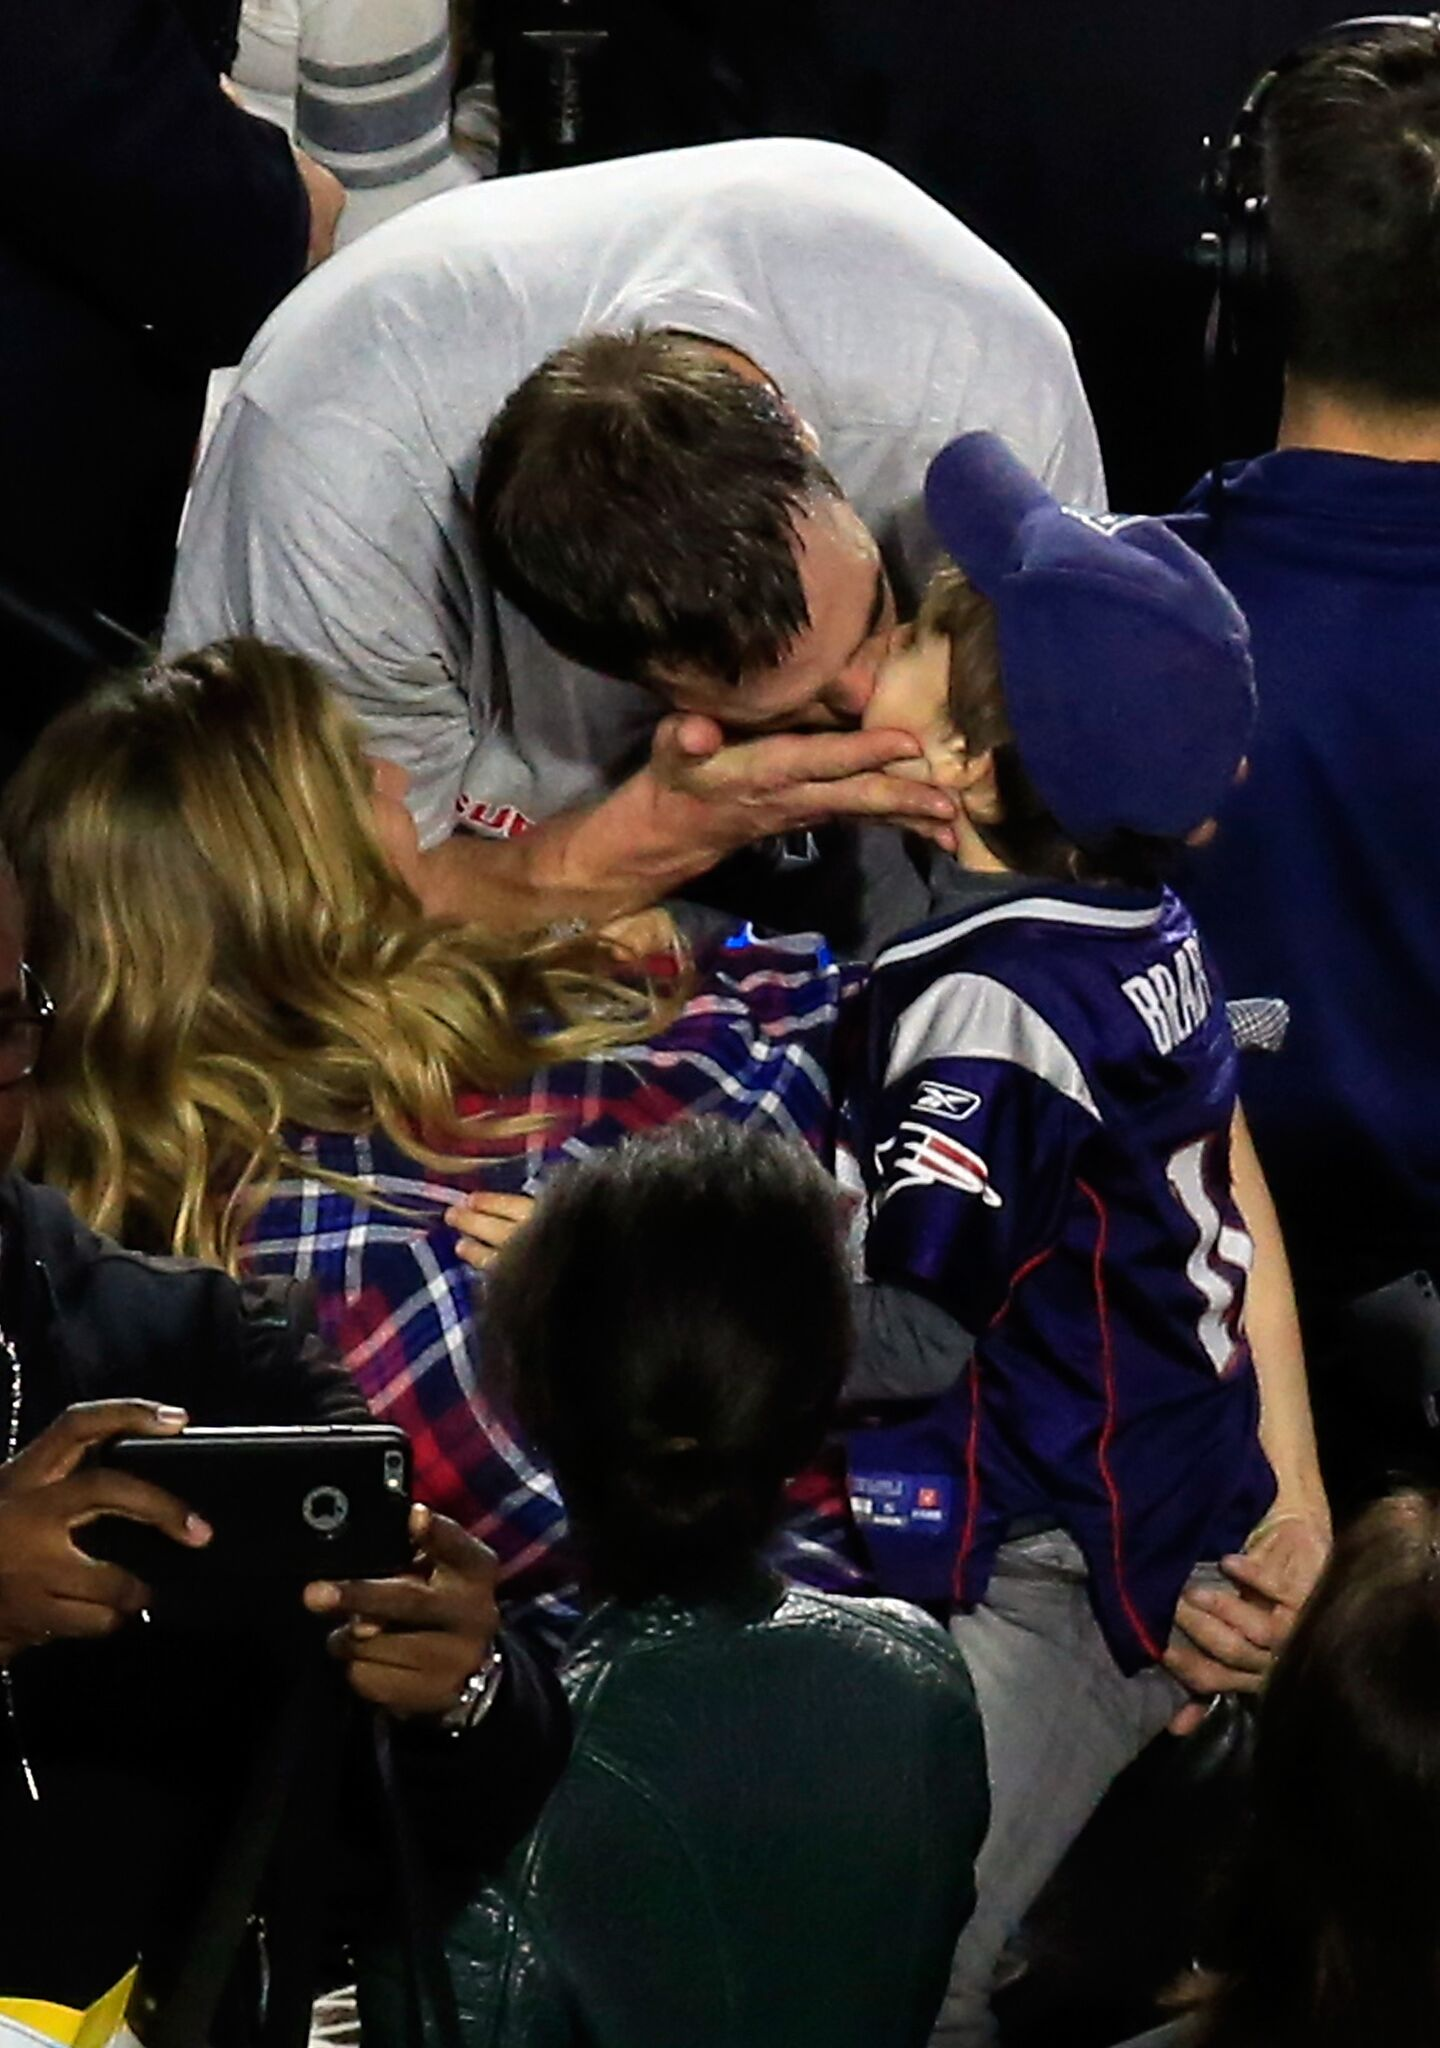 Tom Brady #12 of the New England Patriots celebrates defeating the Seattle Seahawks with his wife Gisele Bundchen and son Benjamin during Super Bowl XLIX at University of Phoenix Stadium | Getty Images